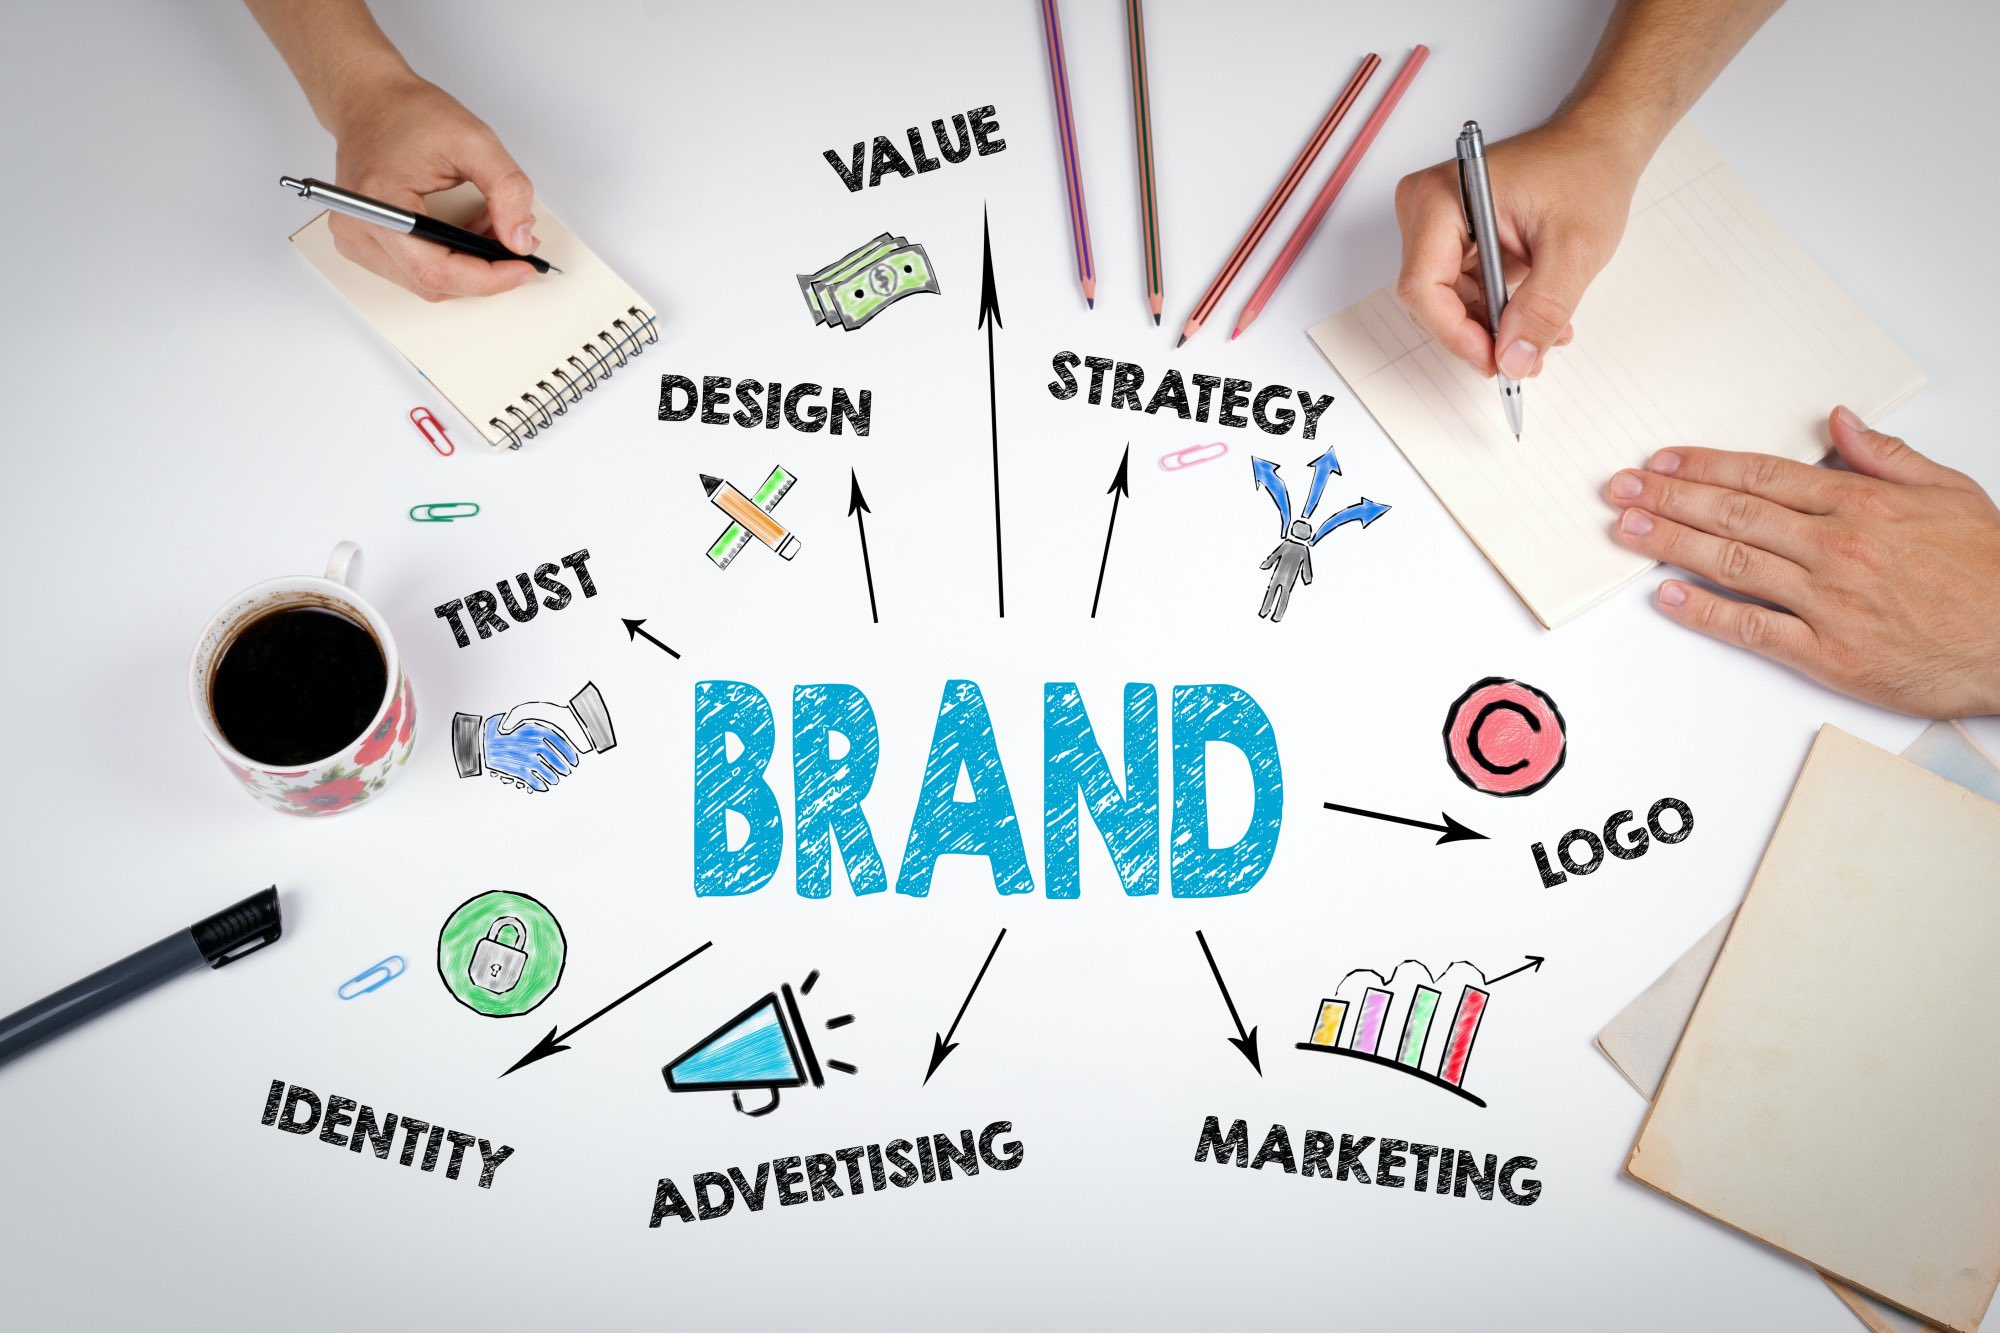 The Key Components for a Successful Brand Building Strategy